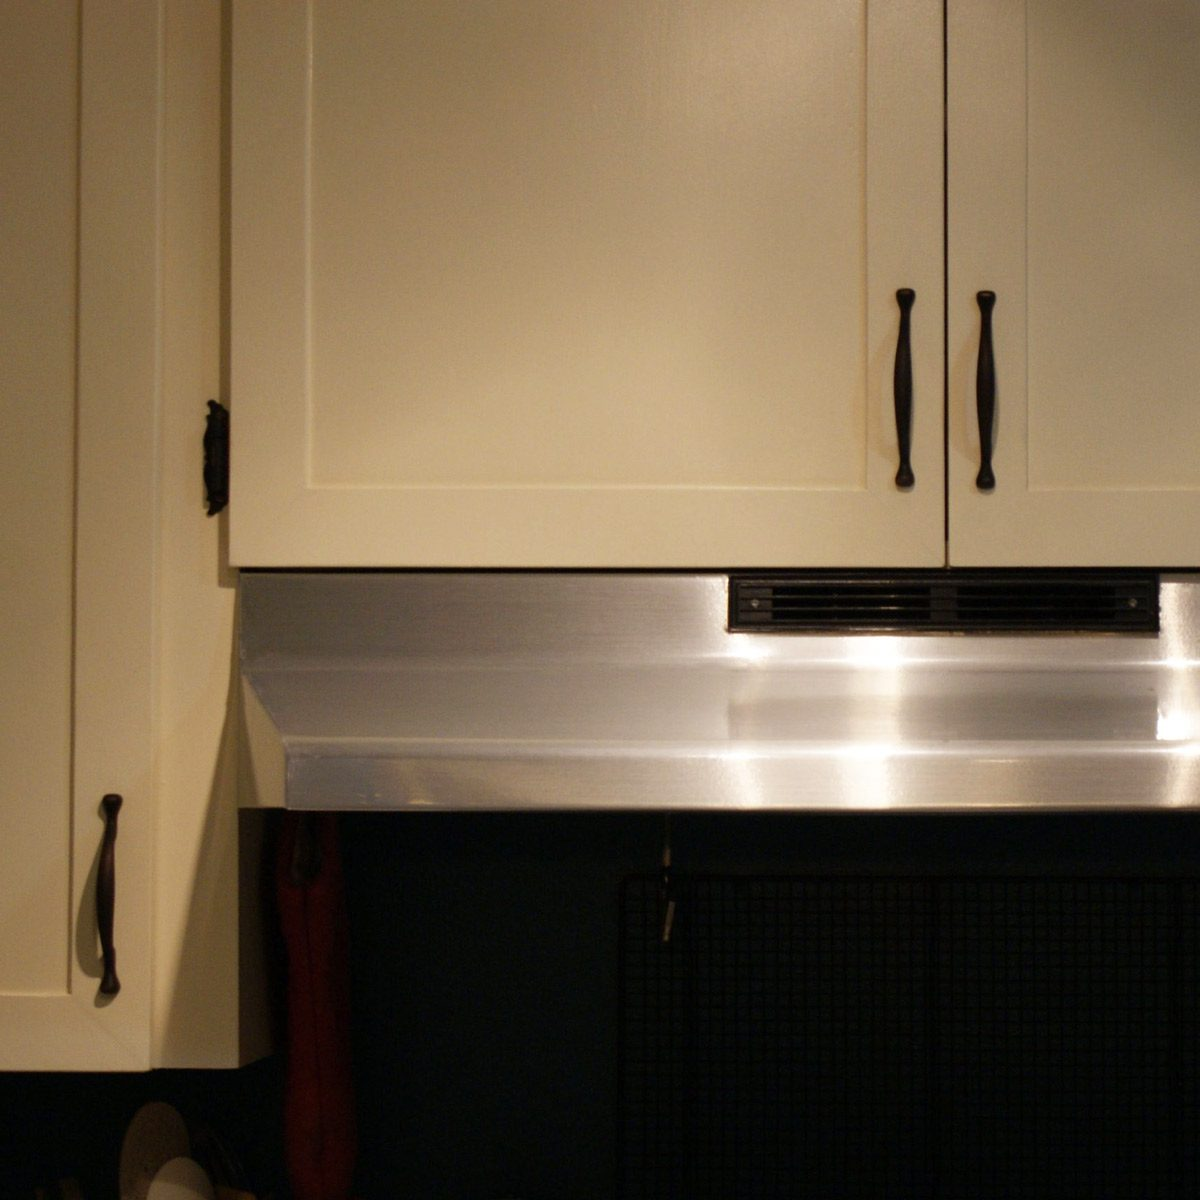 Creative ways to disguise a range hood vent the family handyman stainless steel faux range hood solutioingenieria Images